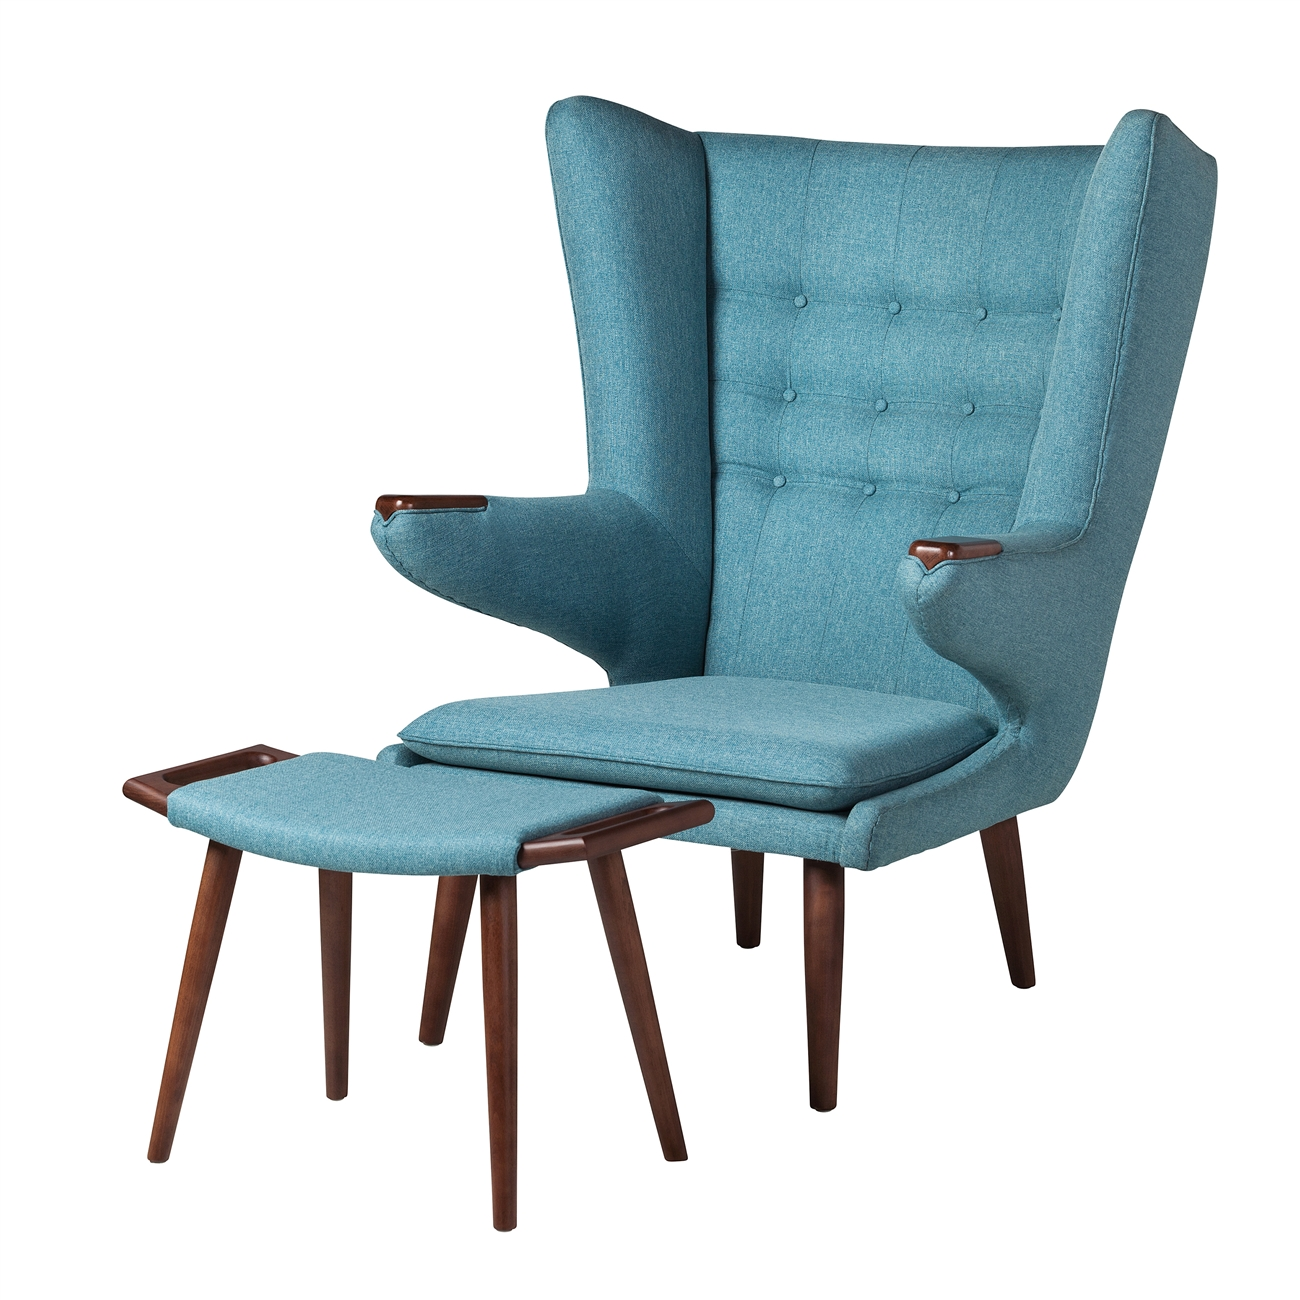 papa bear chair. Papa Bear Inspired Chair With Ottoman-Light Blue H